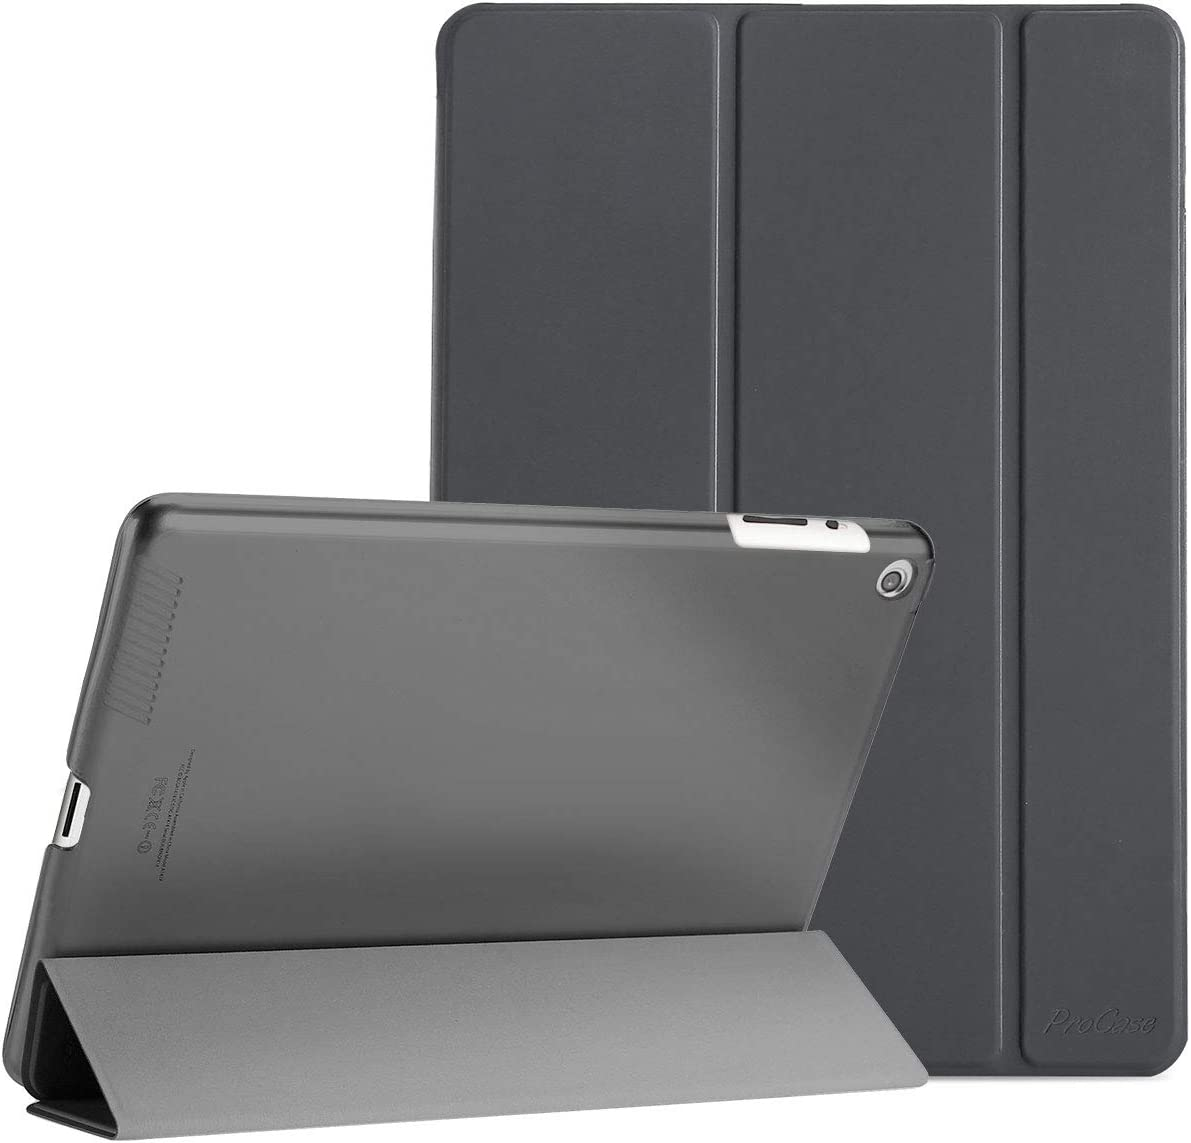 Funda ProCase para Apple iPad 2 / iPad 3 / iPad 4 (Gris)